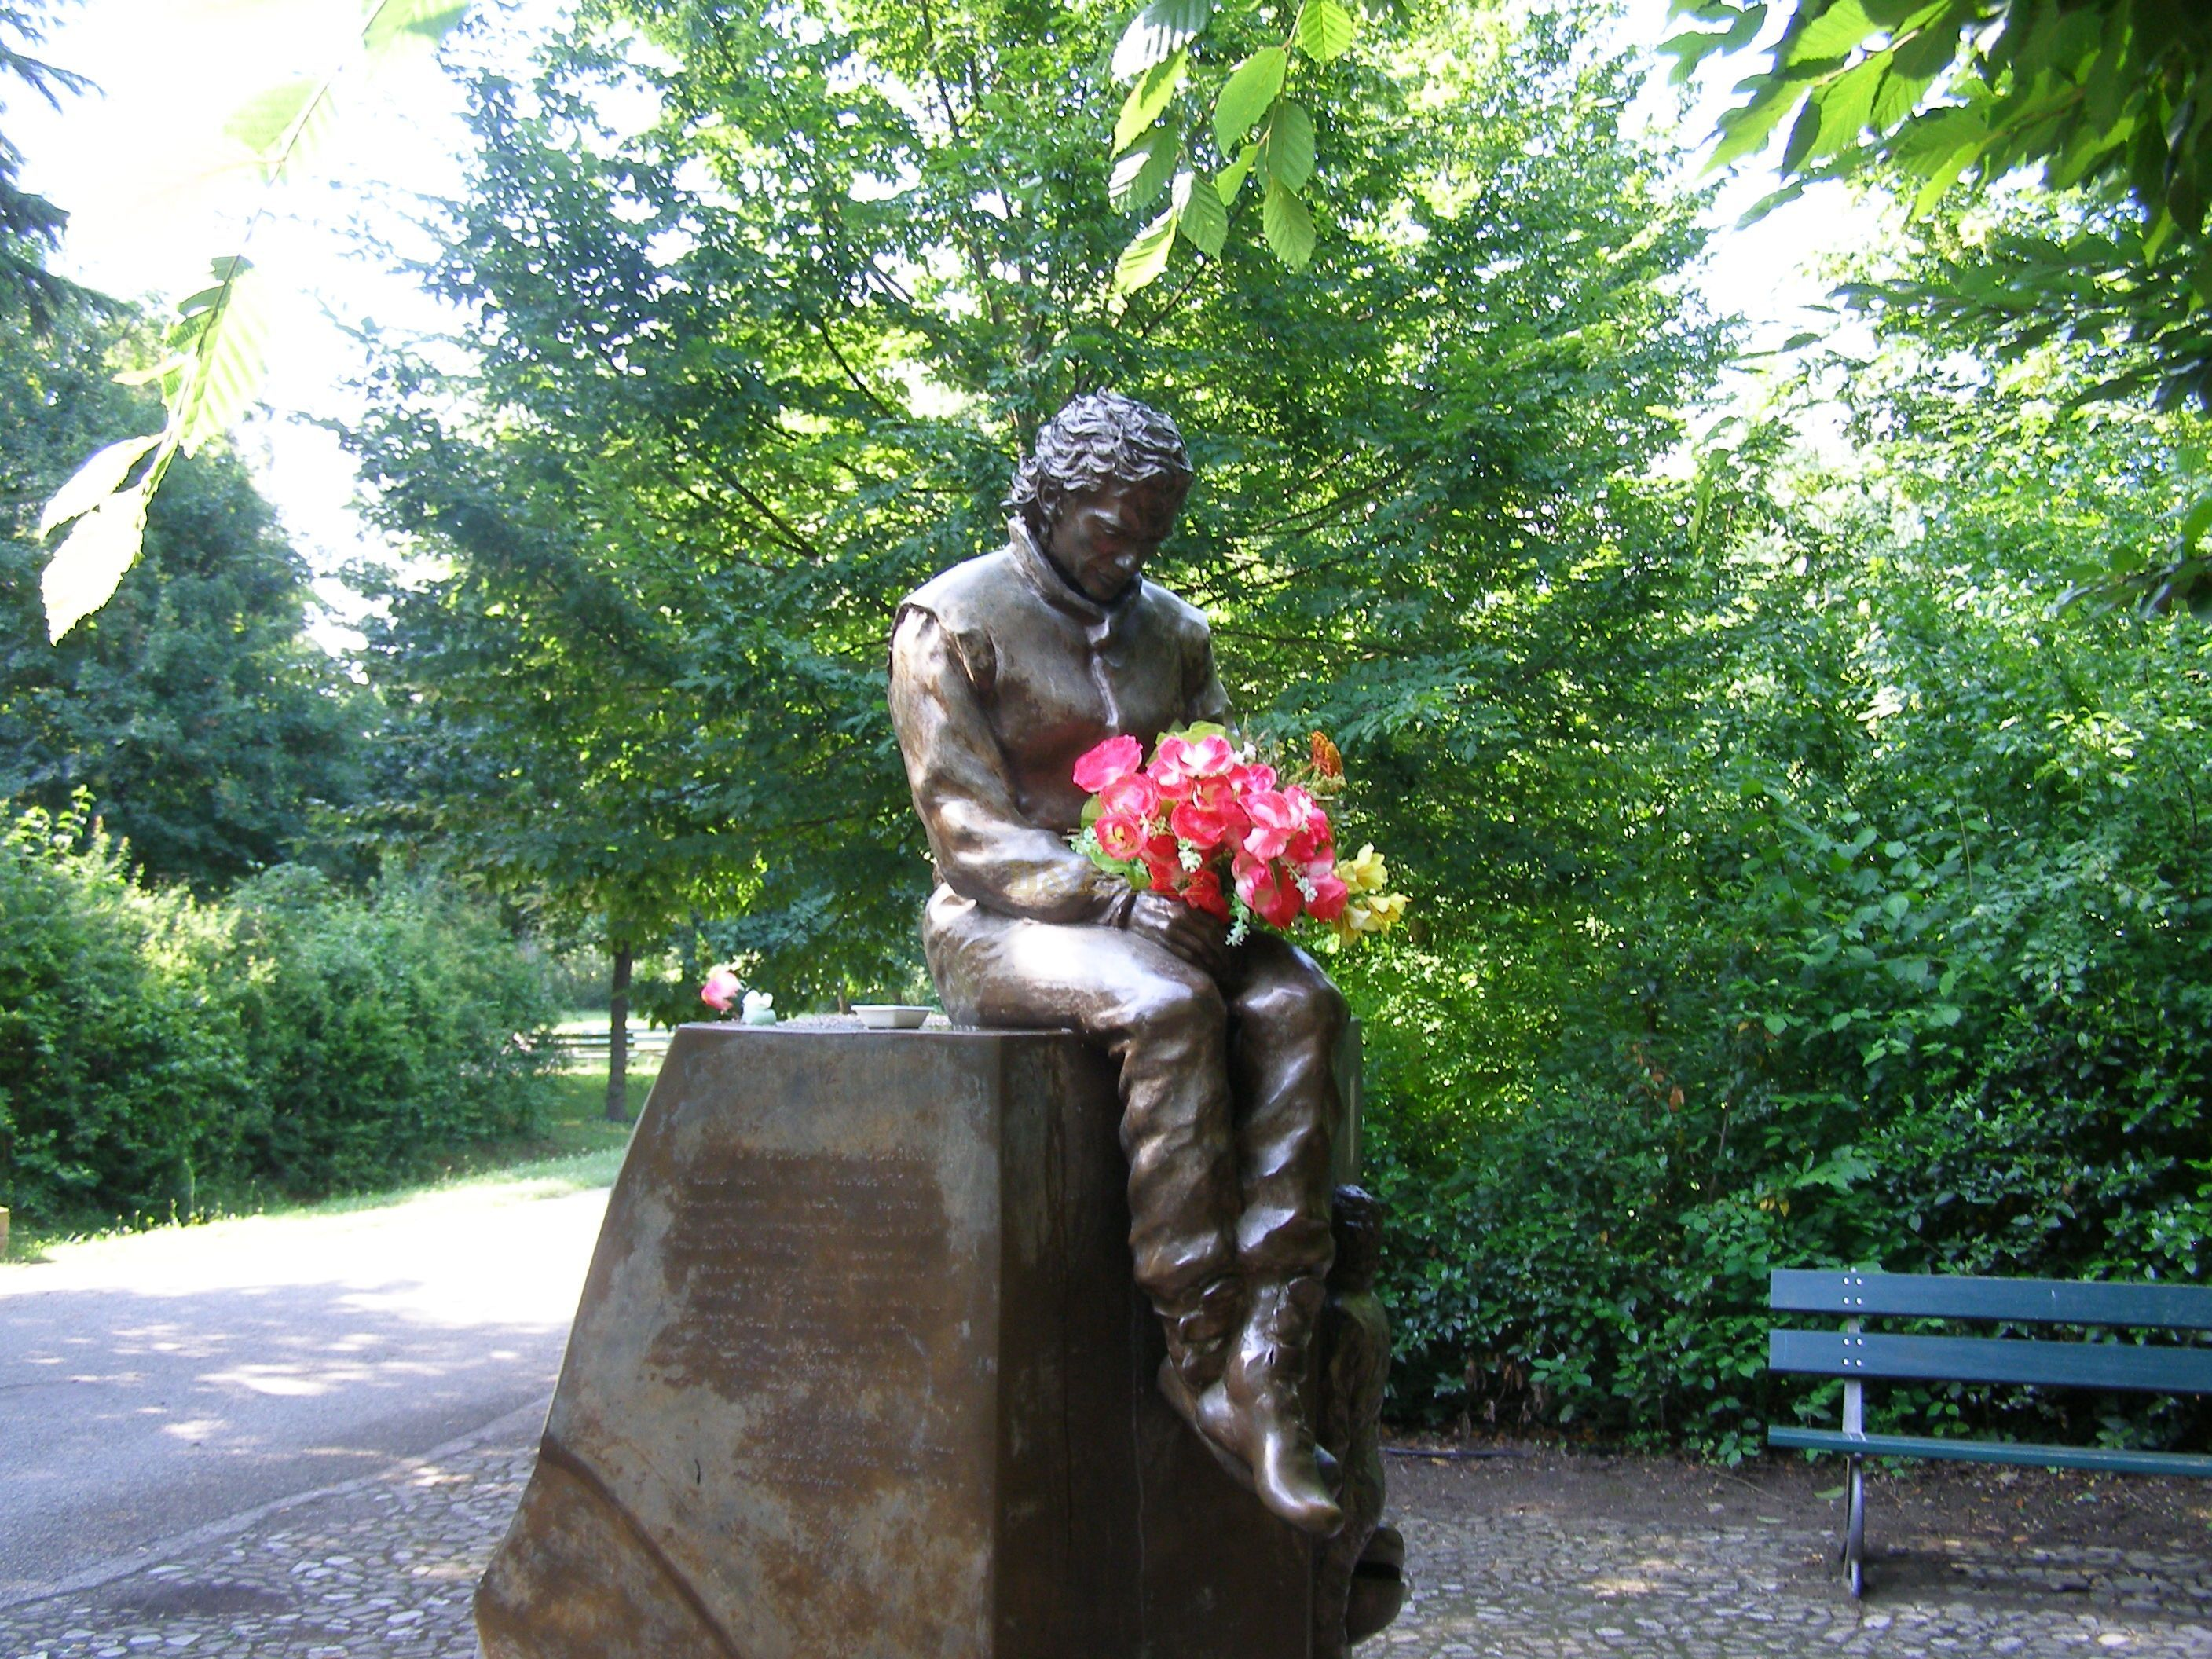 the statue of Senna at Imola